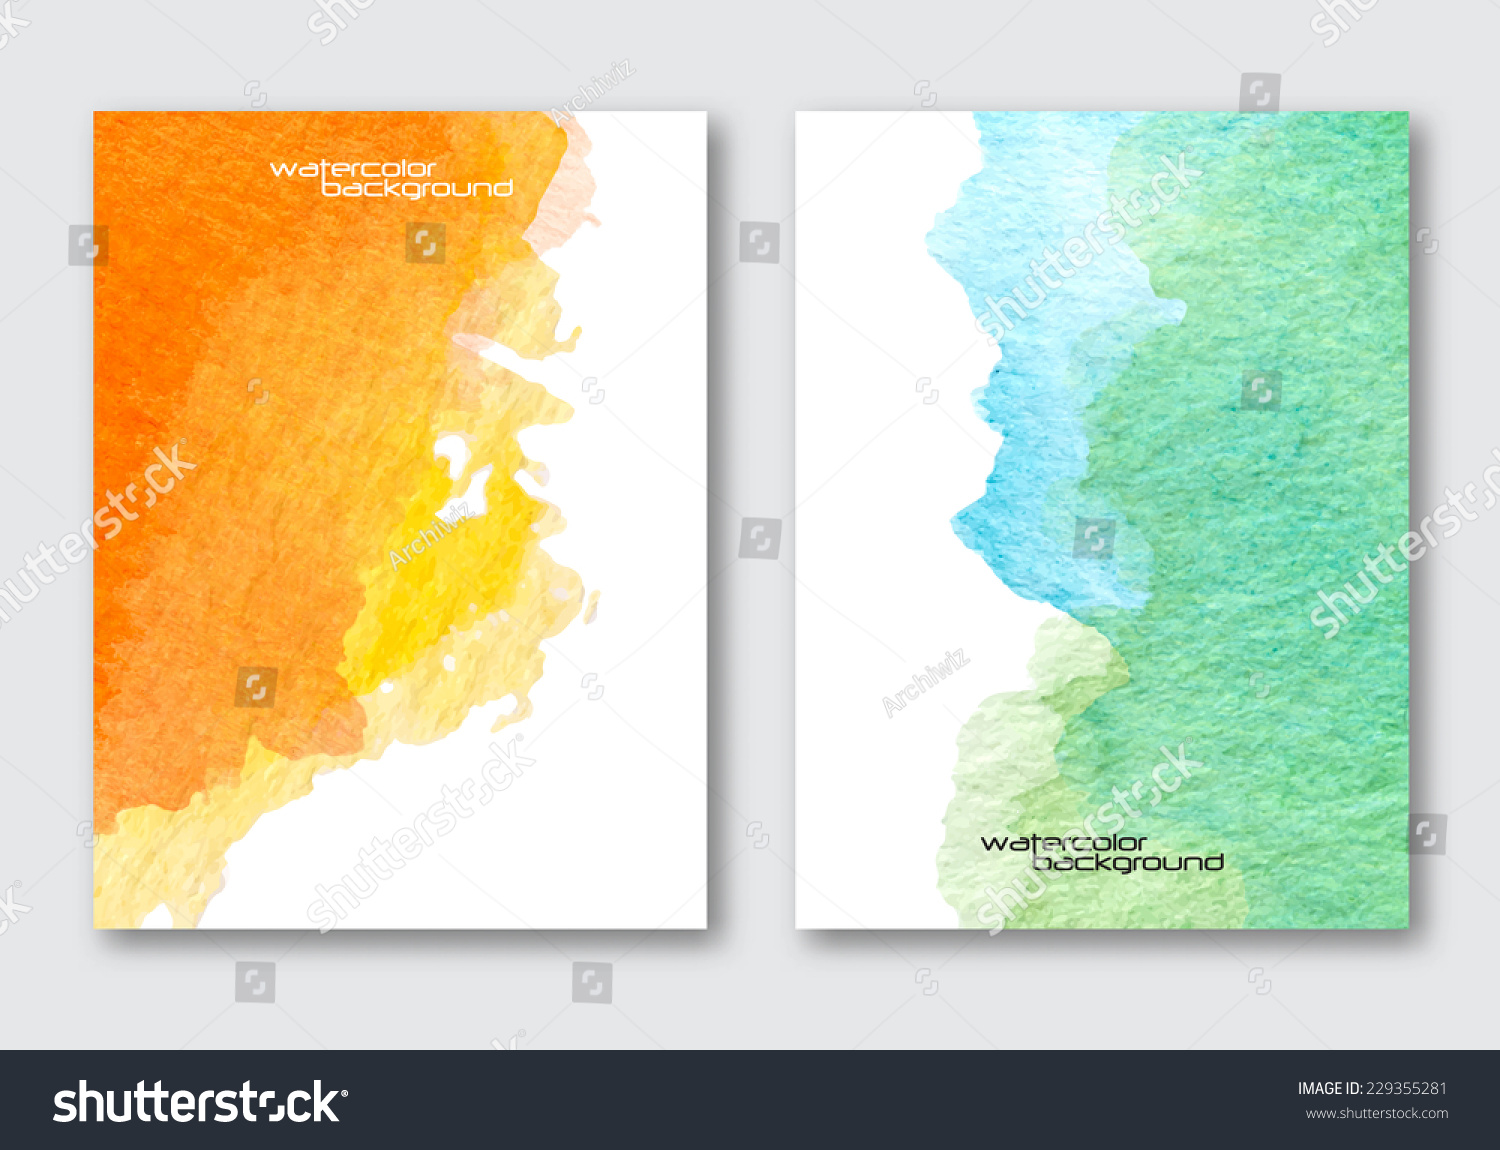 Vector Poster Template Hand Drawn Watercolor Stock Vector HD